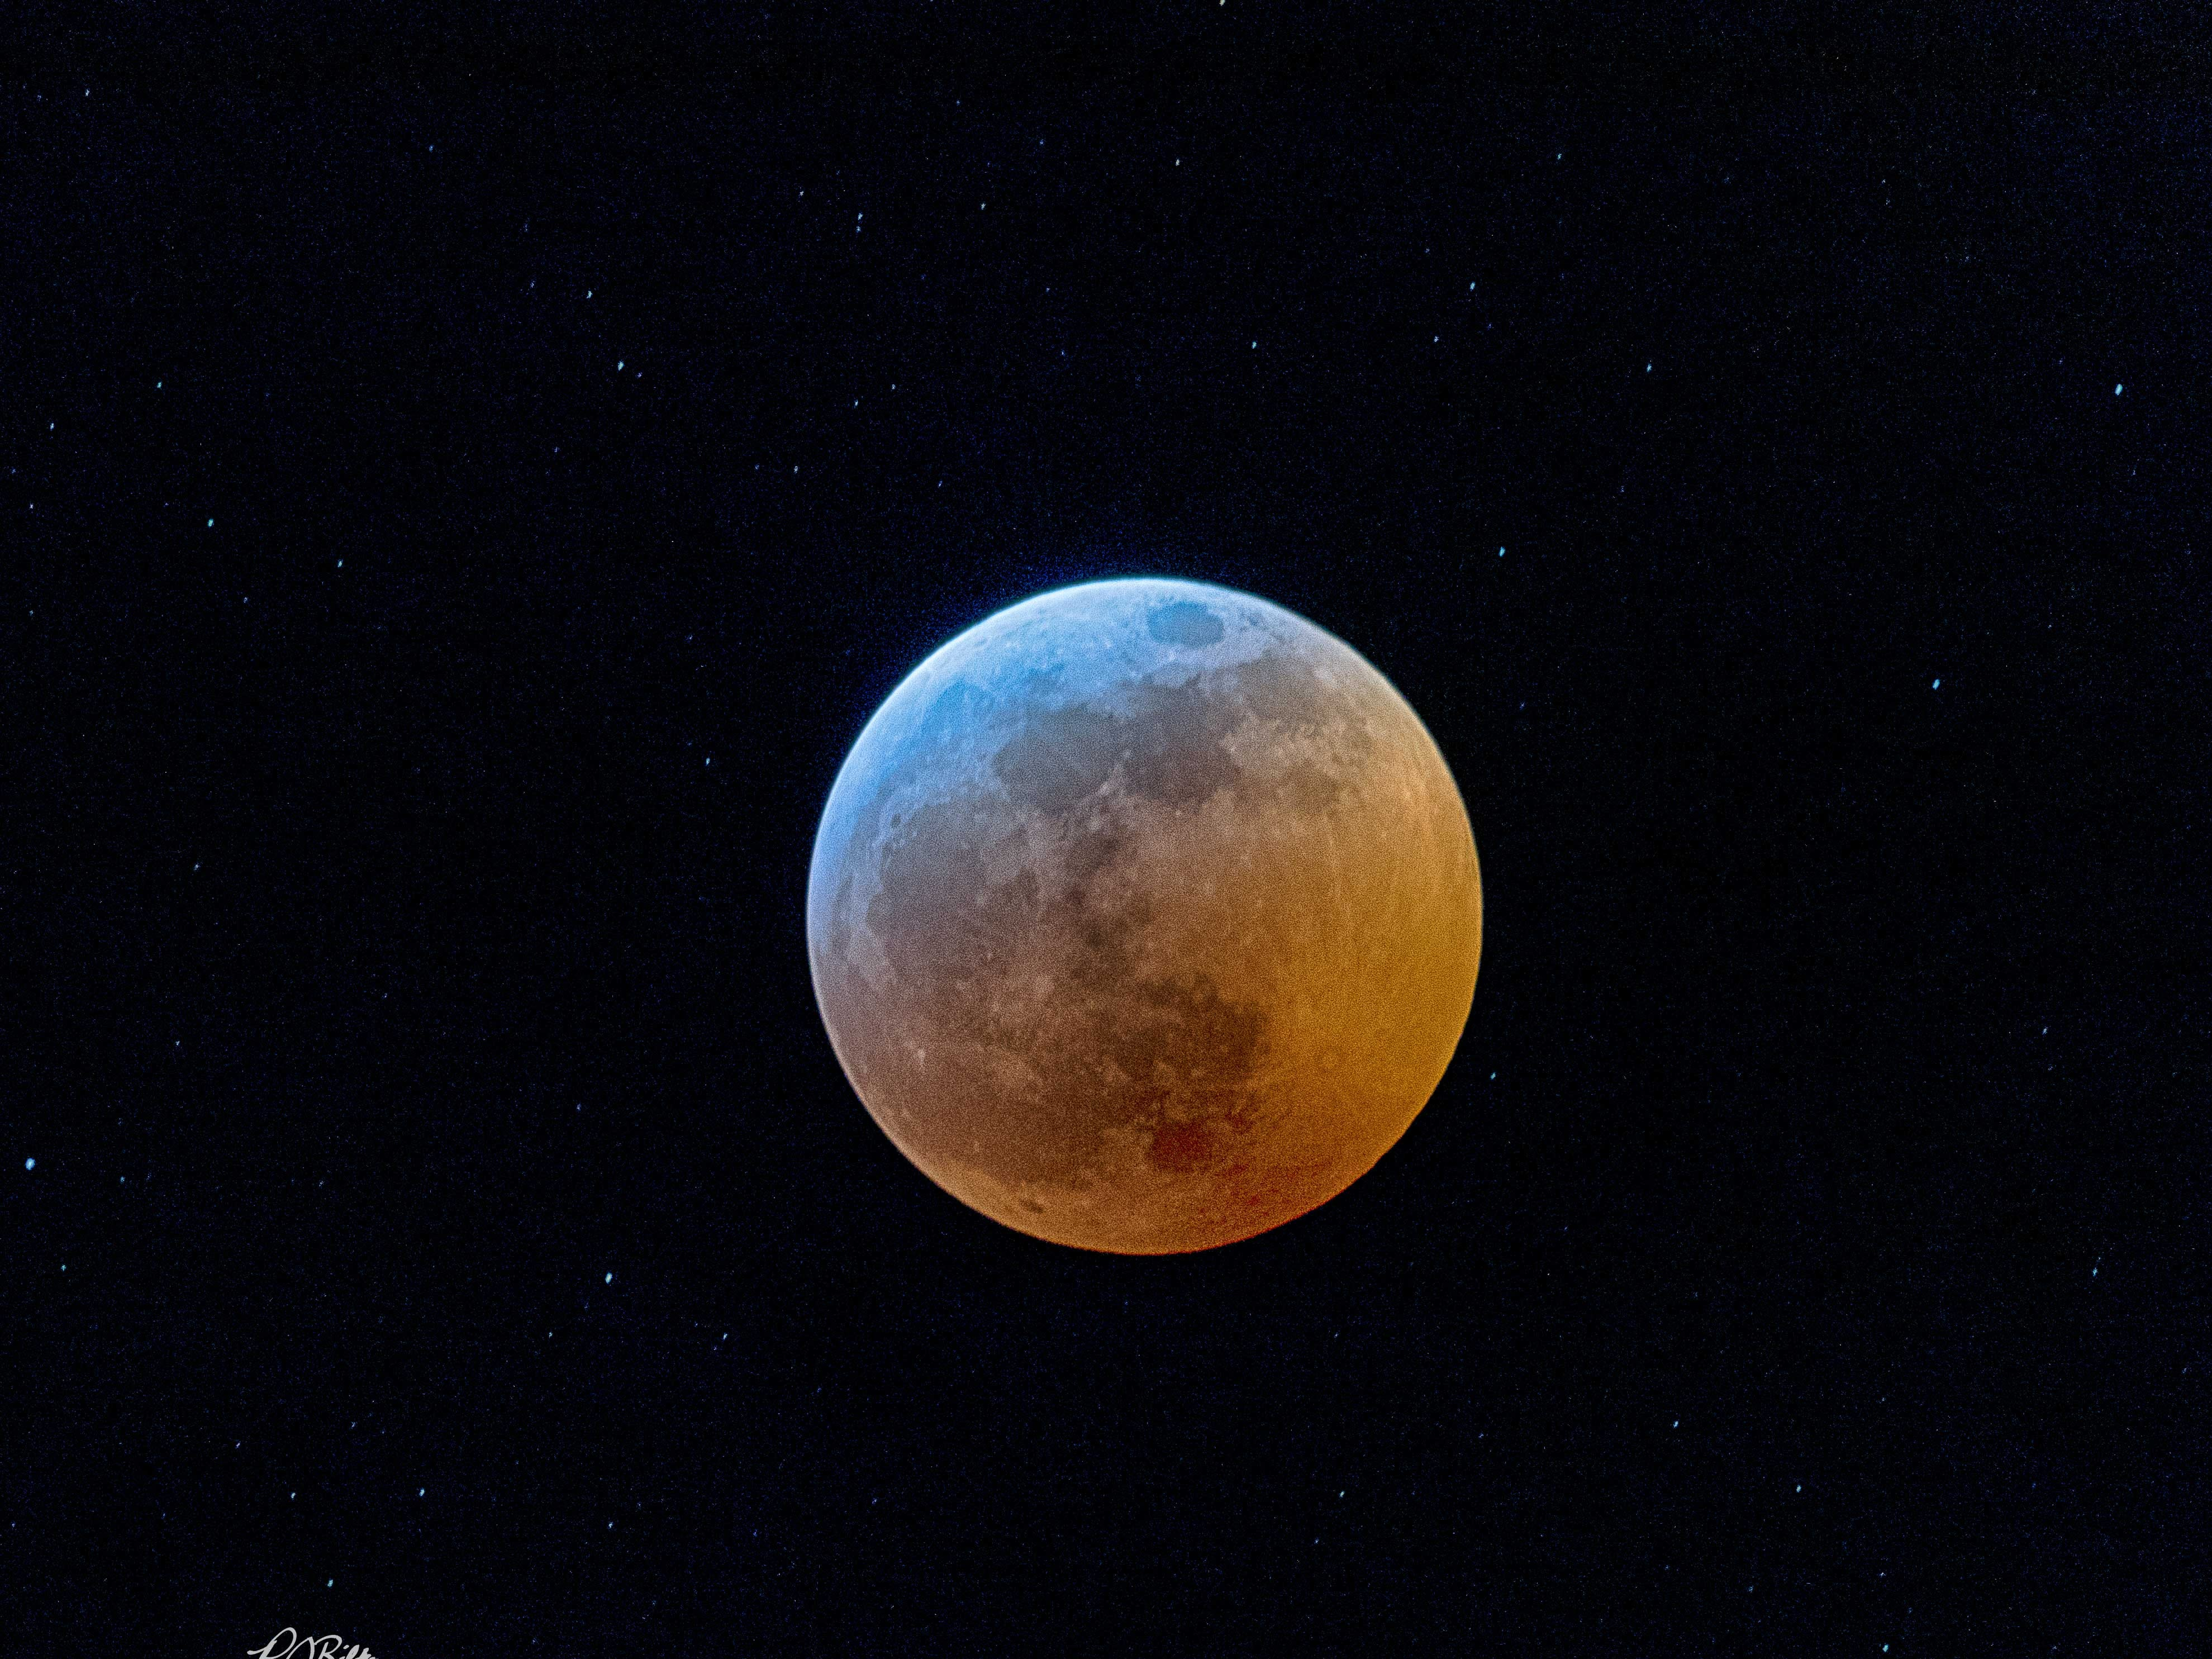 Robert Bilsky got this shot of the Super Wolf Blood Moon Eclipse from his front porch in Knoxville on Jan. 20, 2019.